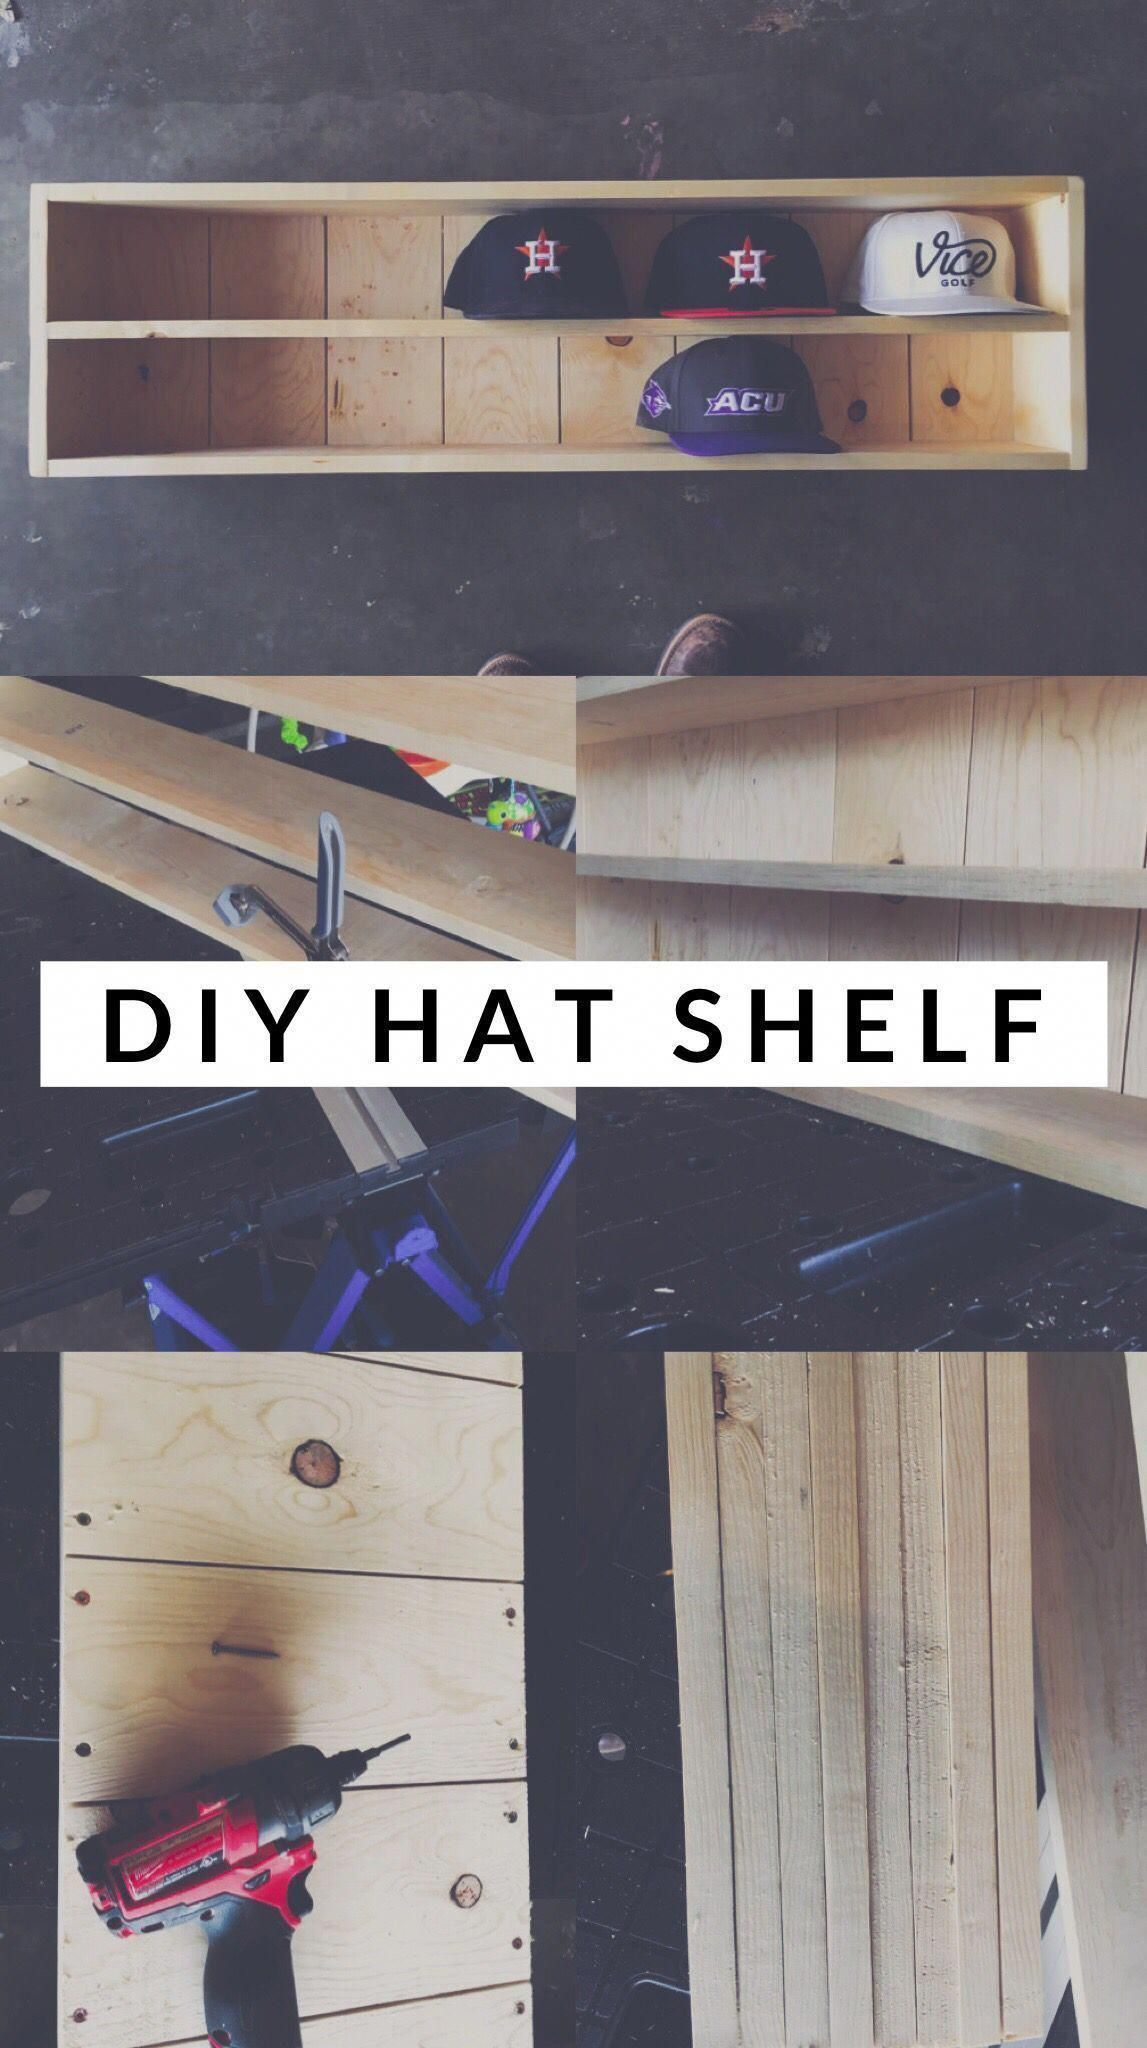 Get free plans for this easy woodworking project.  Store all your hats on display with this cool shelf.  #homedecor #diy #smallwoodworkingprojectspallets